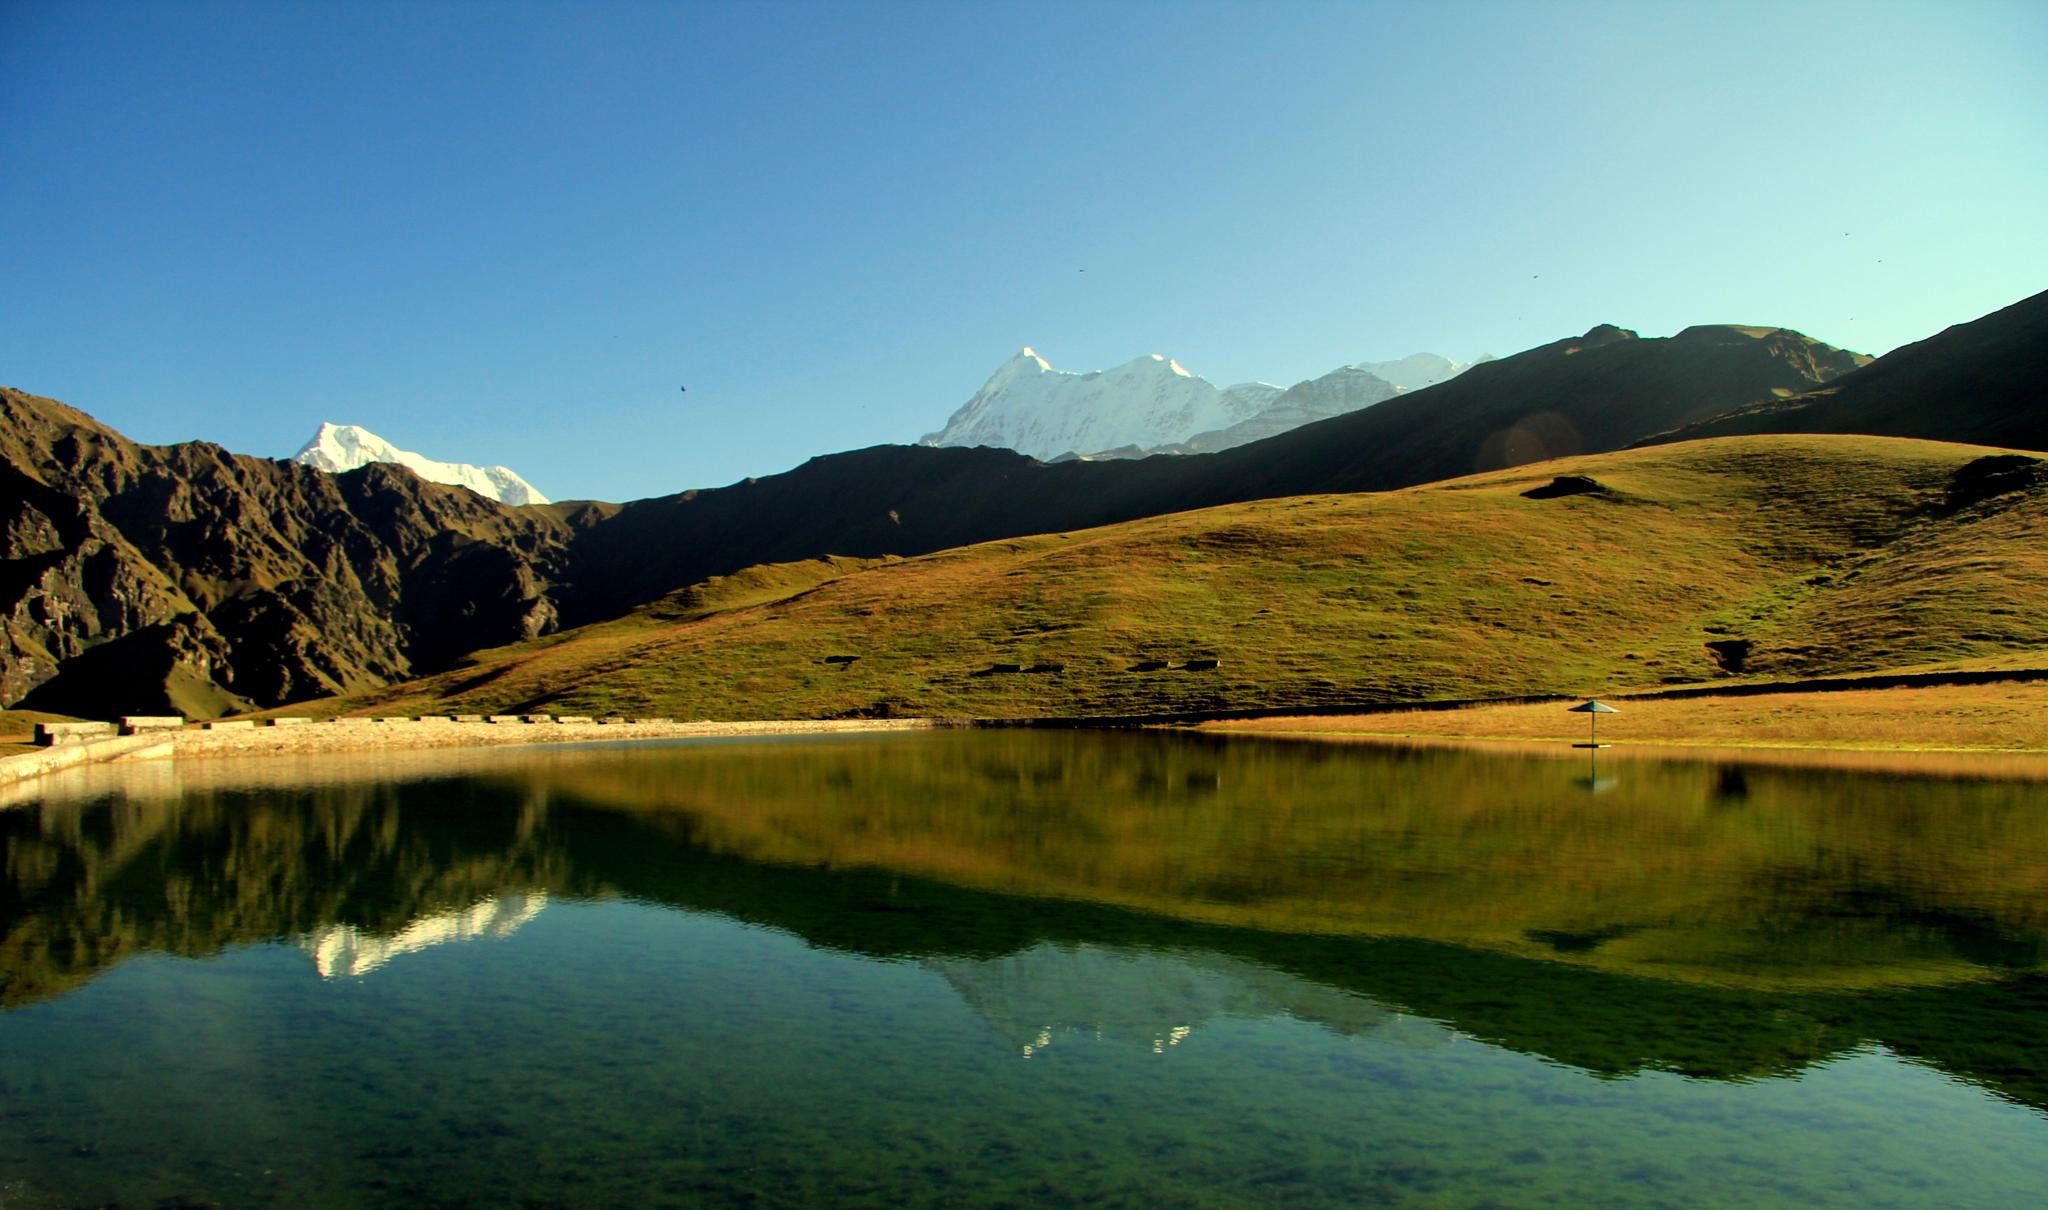 Reflection of Mt.Trishul and Nanda Ghunti on Bedni Kund by madhujith